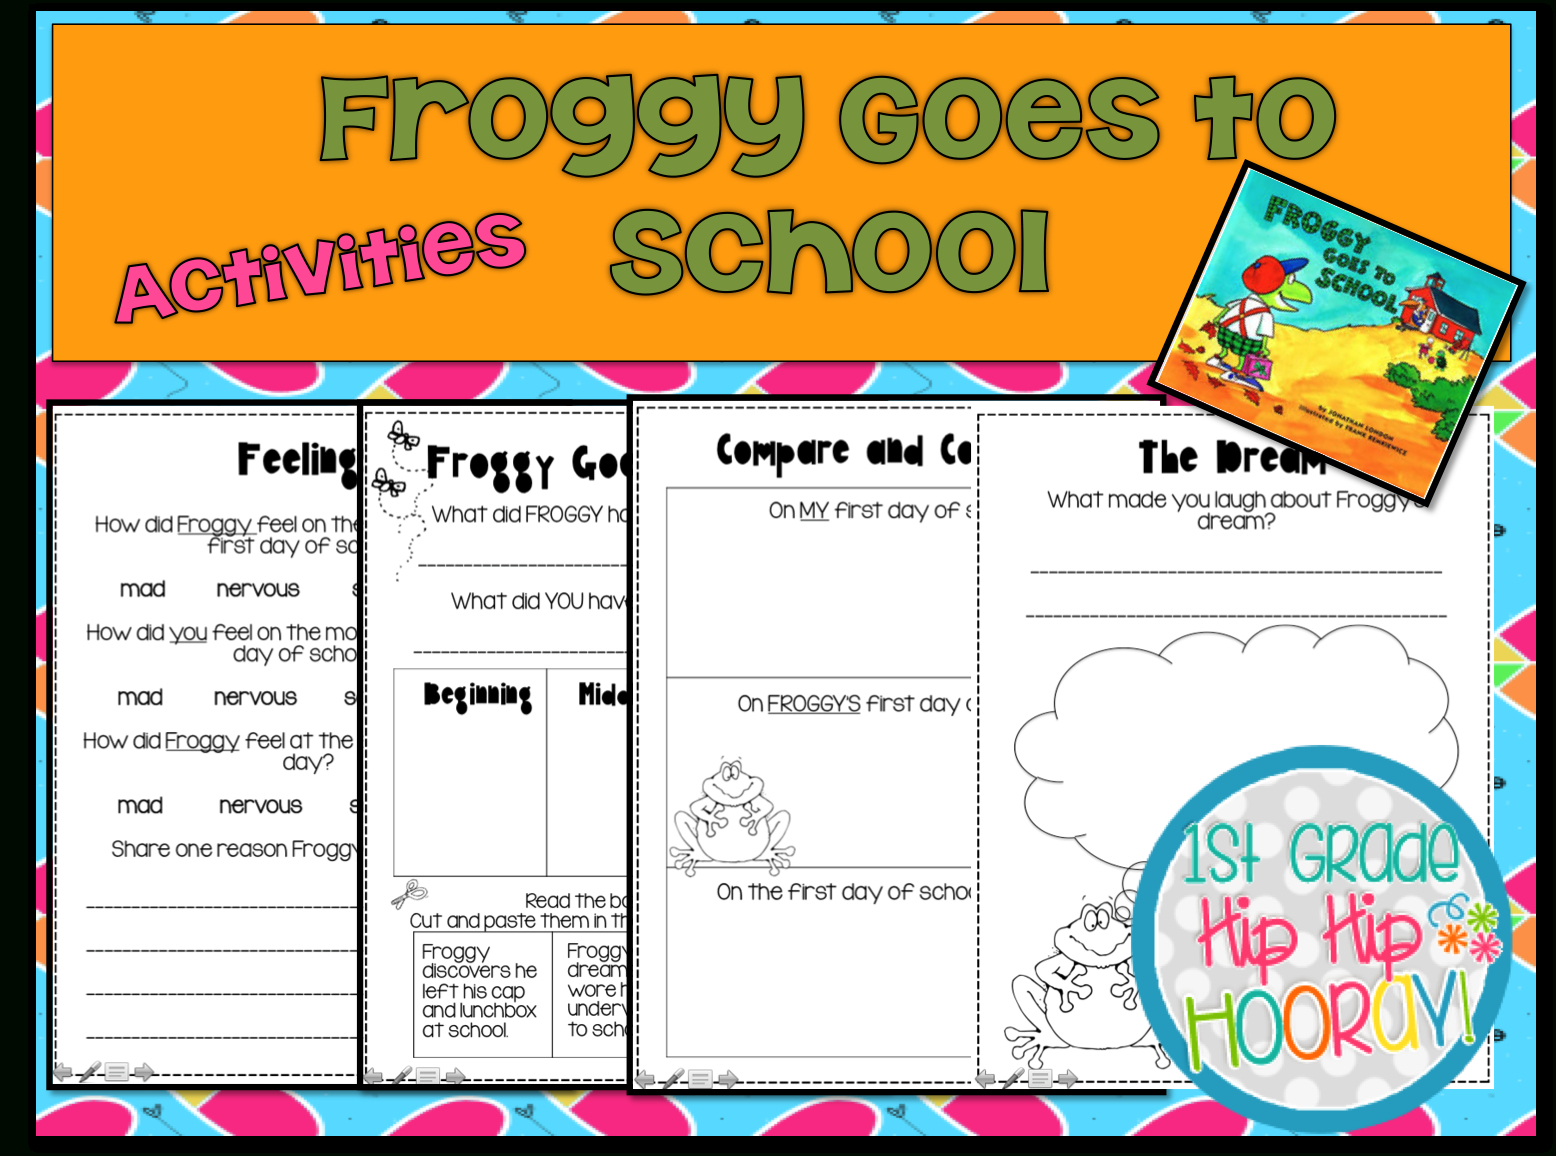 Froggy Goes To School Png Transparent Froggy Goes To School - Froggy Goes To School Free Printables